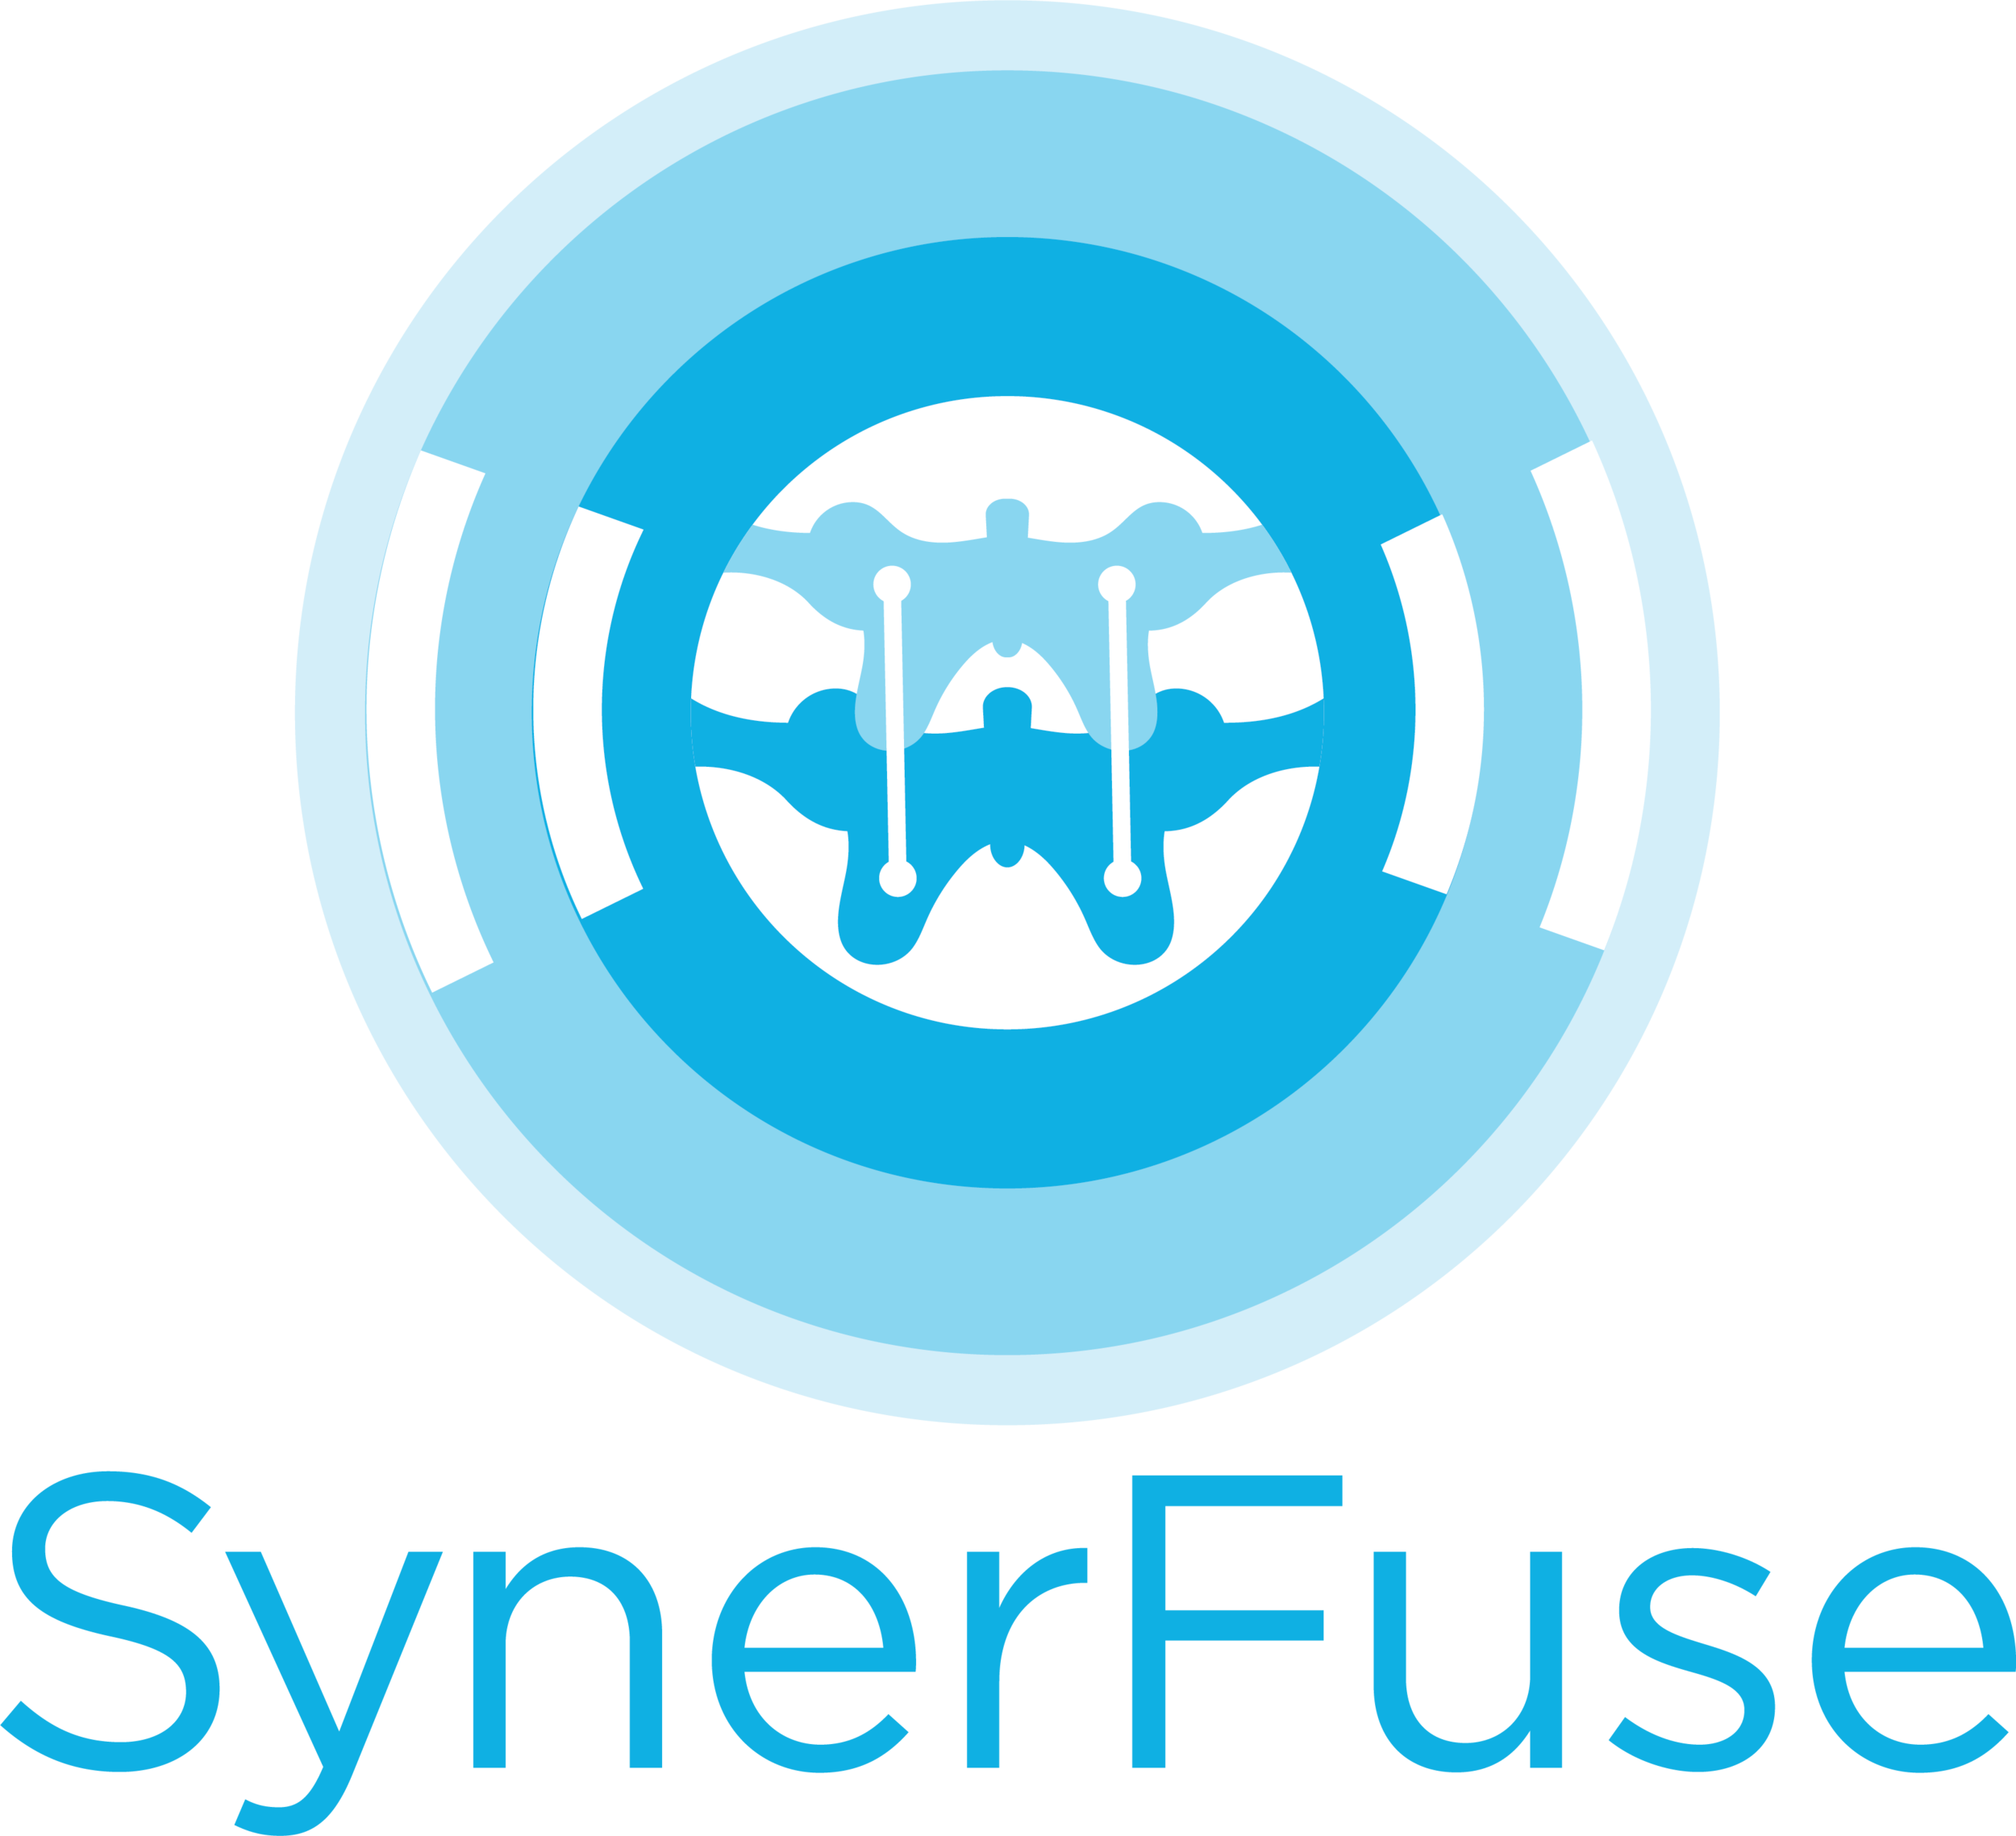 SynerFuse.png